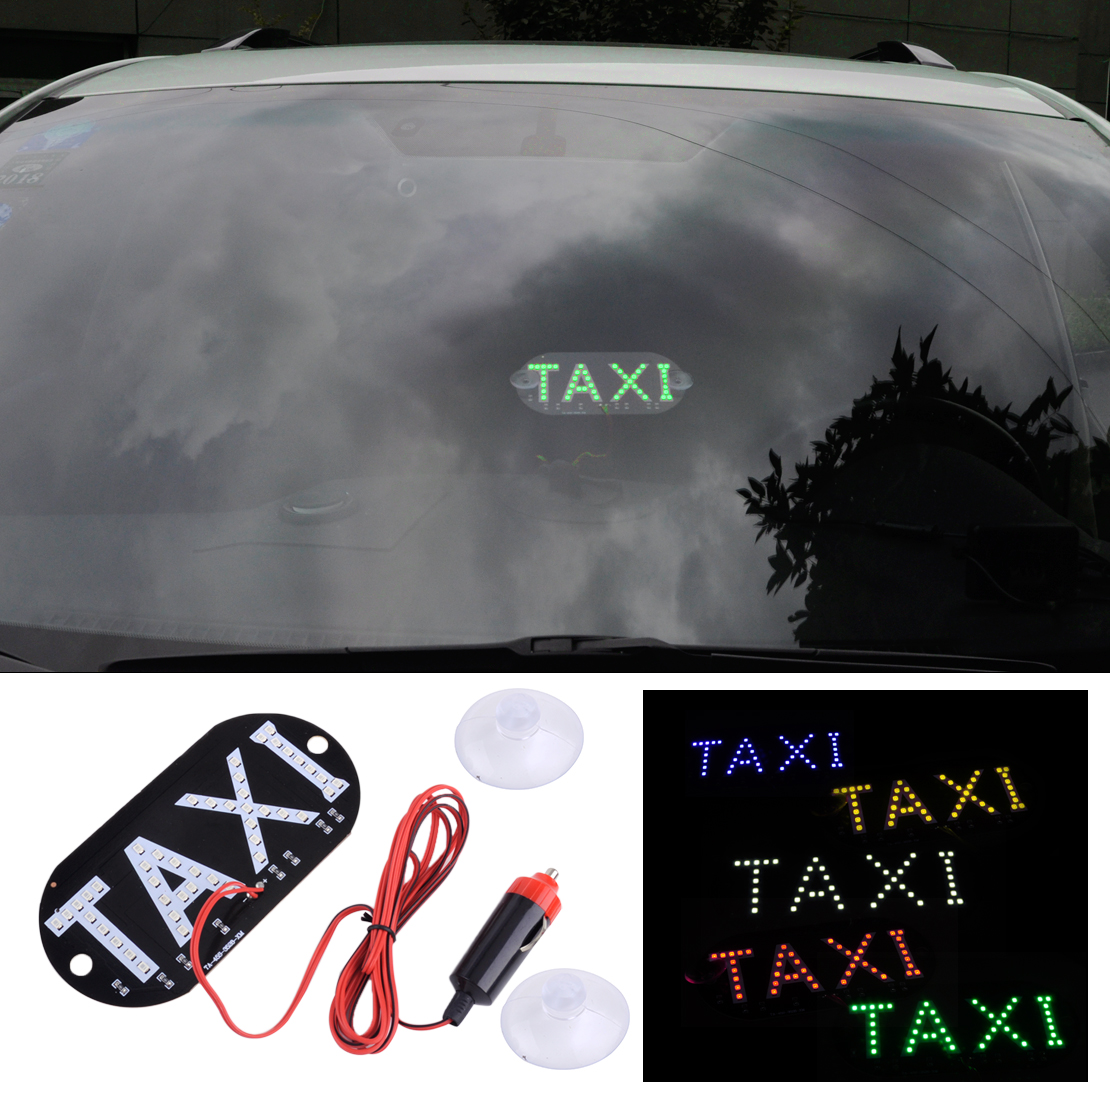 beler Auto Car 12V 45 LED 5 colors Cab Roof Taxi Sign Light Vehicle Inside Windscreen Lamp High Quality